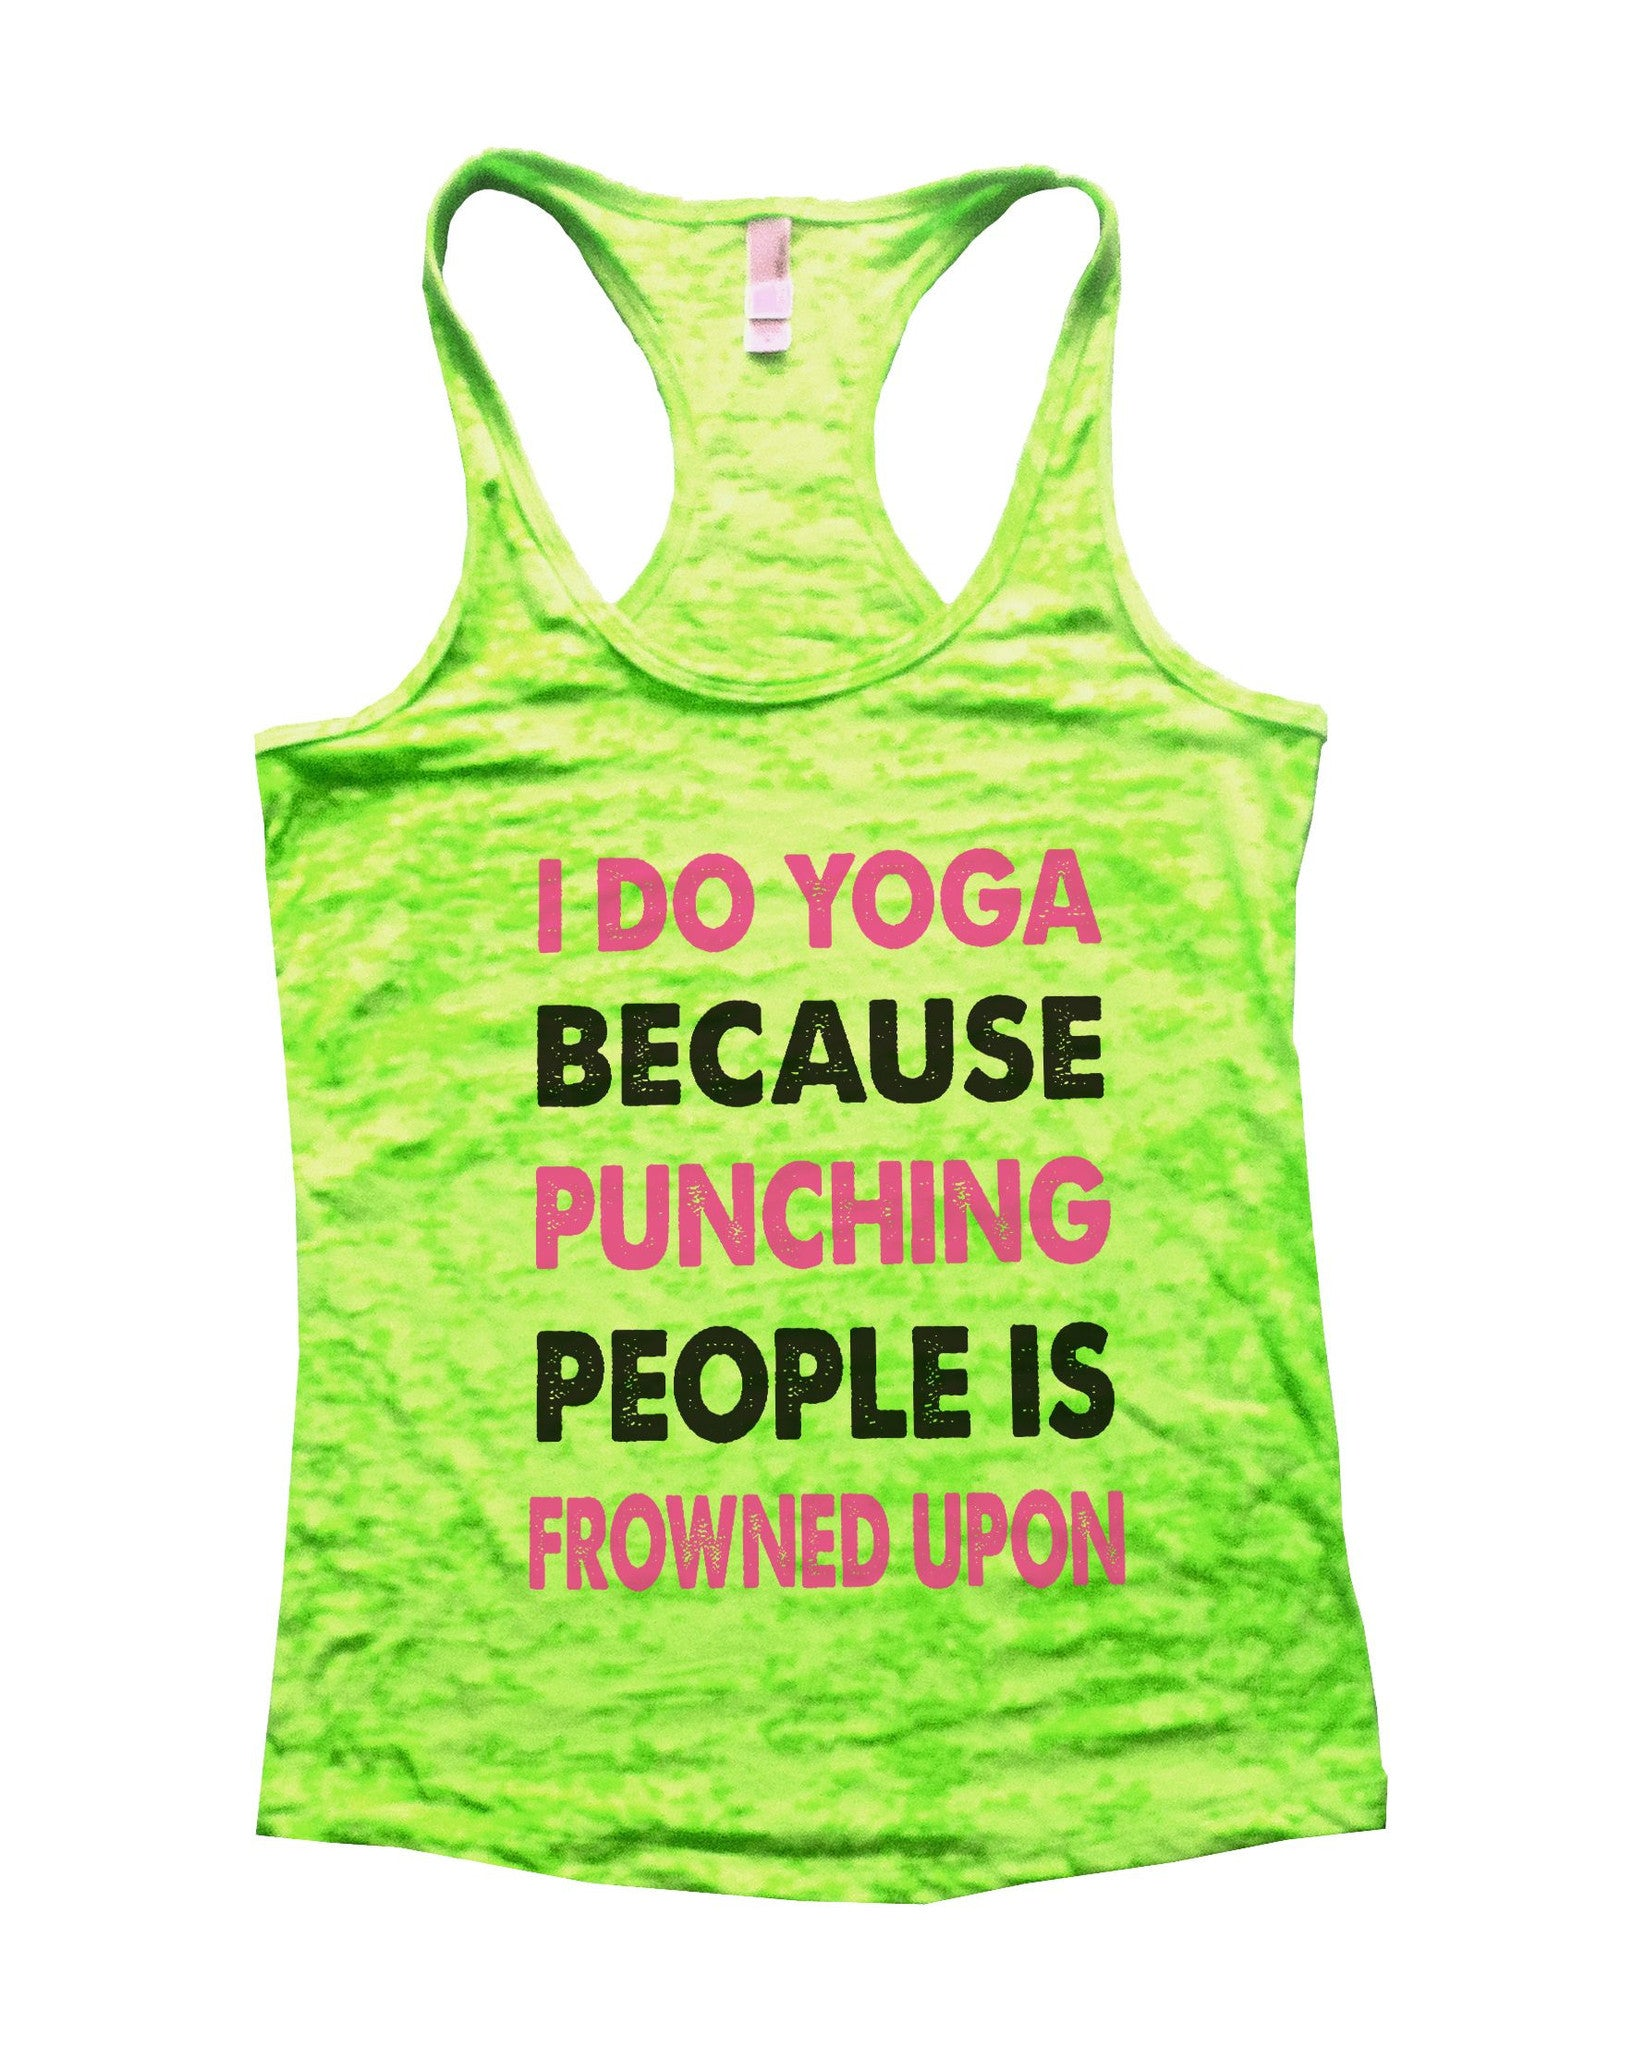 I Do Yoga Because Punching People Is Frowned Upon Burnout Tank Top By BurnoutTankTops.com - 685 - Funny Shirts Tank Tops Burnouts and Triblends  - 3